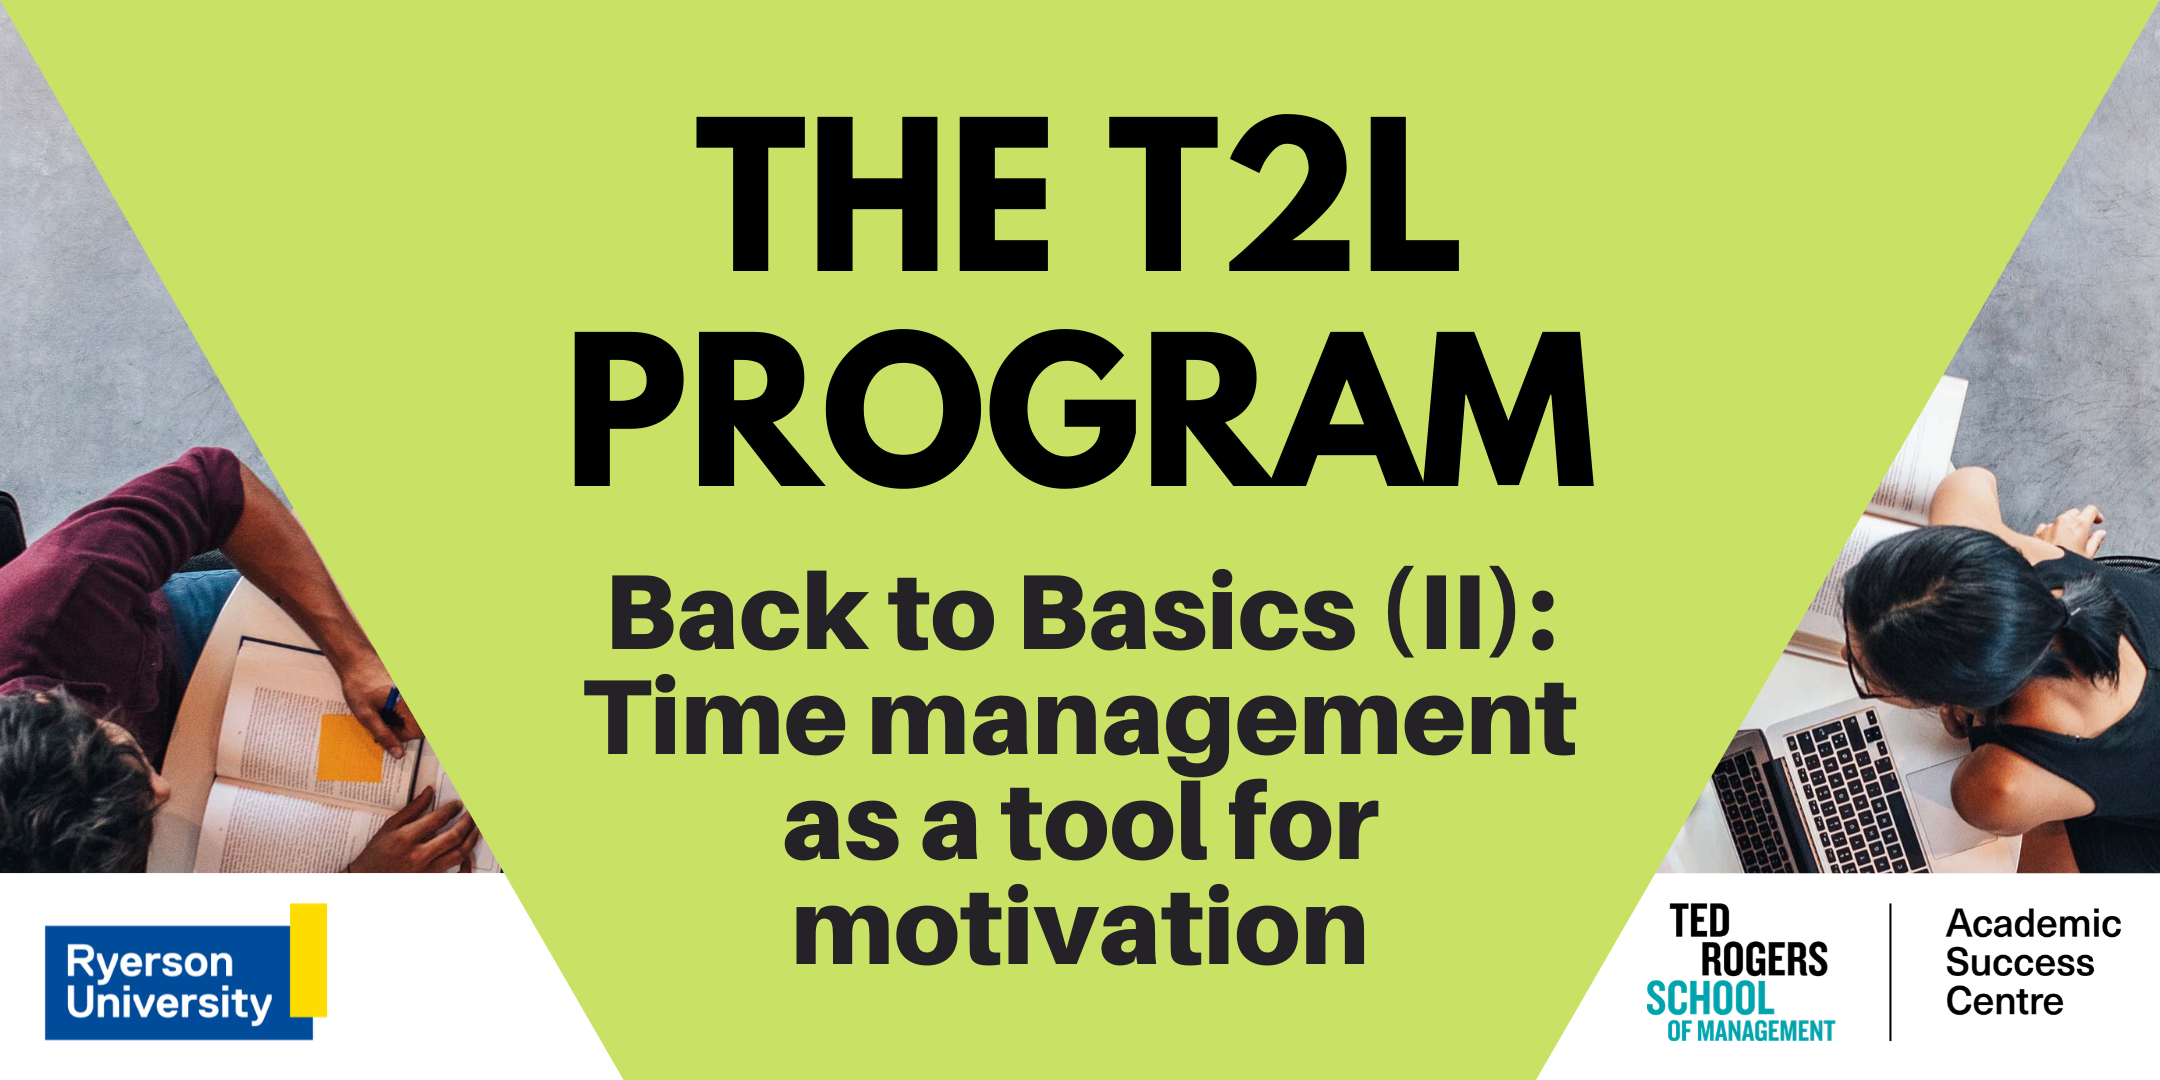 Back to Basics (II): Time management as a tool for motivation